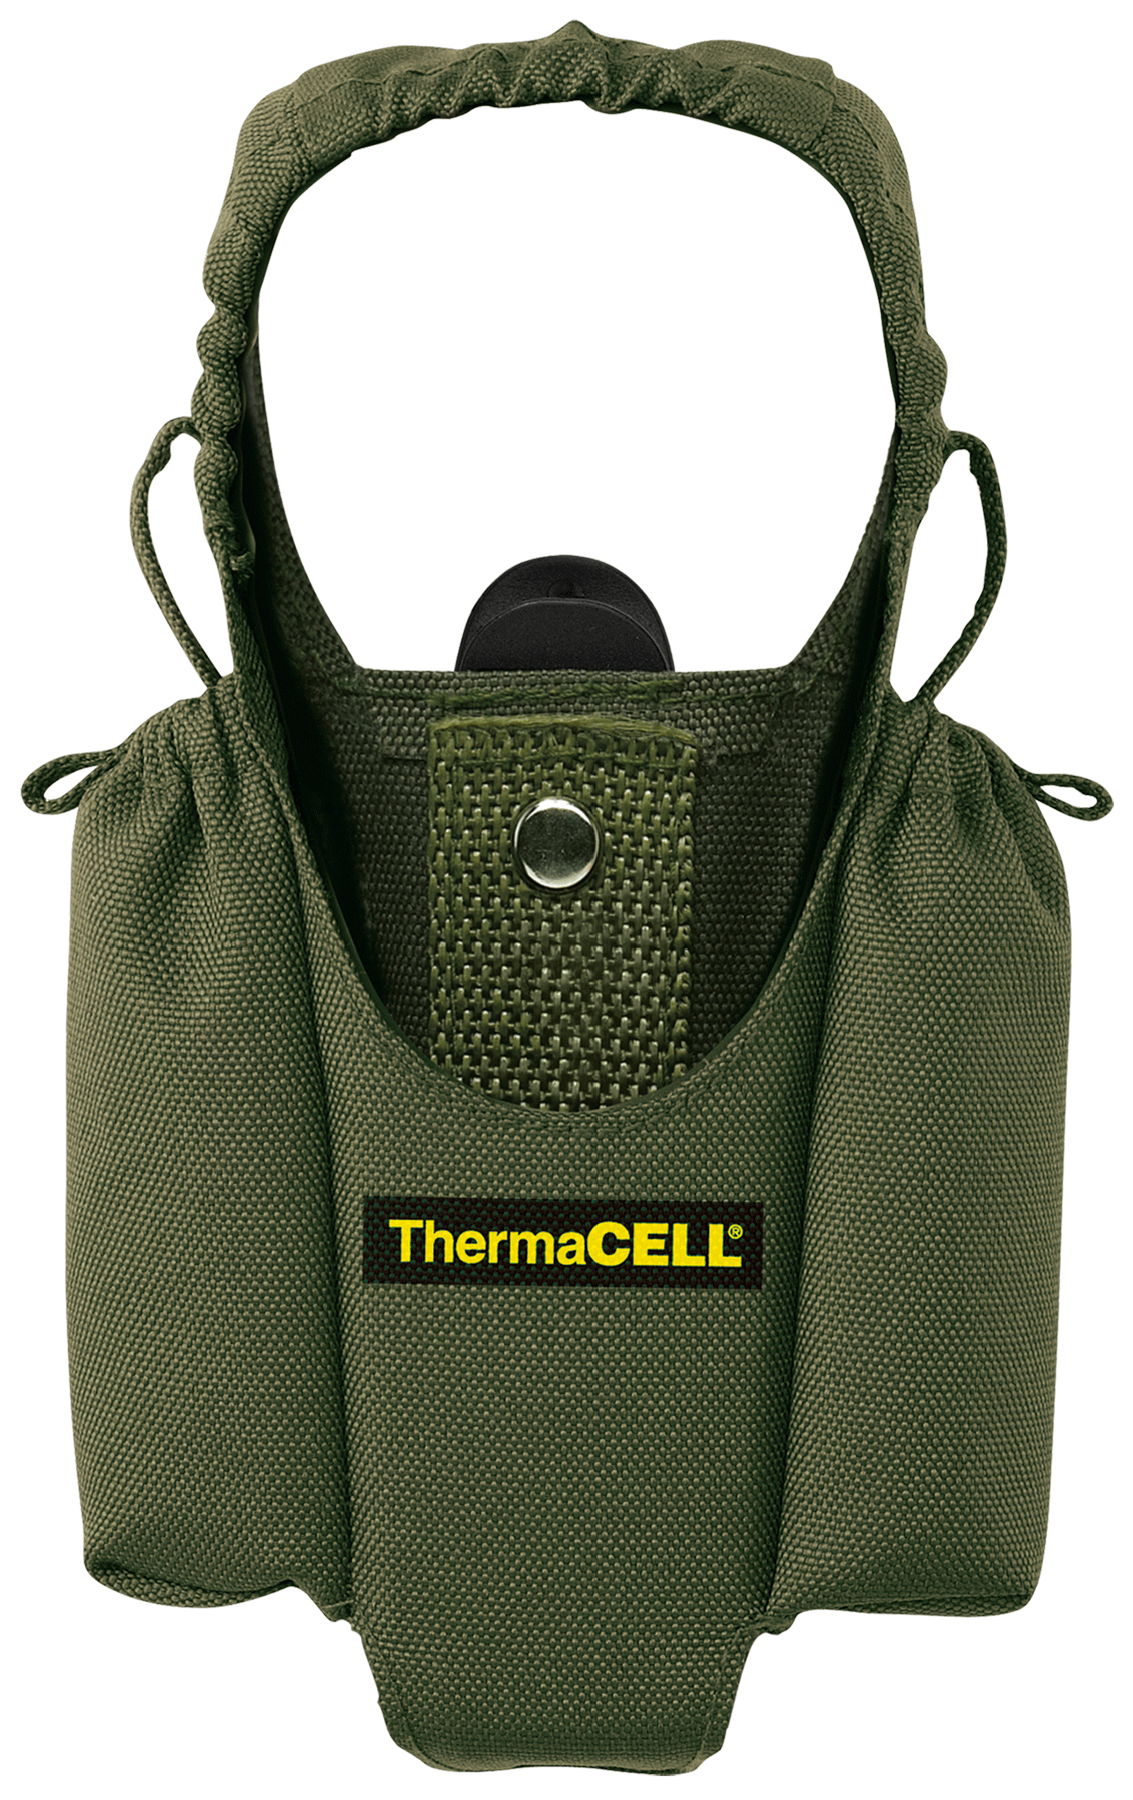 Thermacell MRHJ Repellent Appliance Holster with Clip Olive Drab Nylon